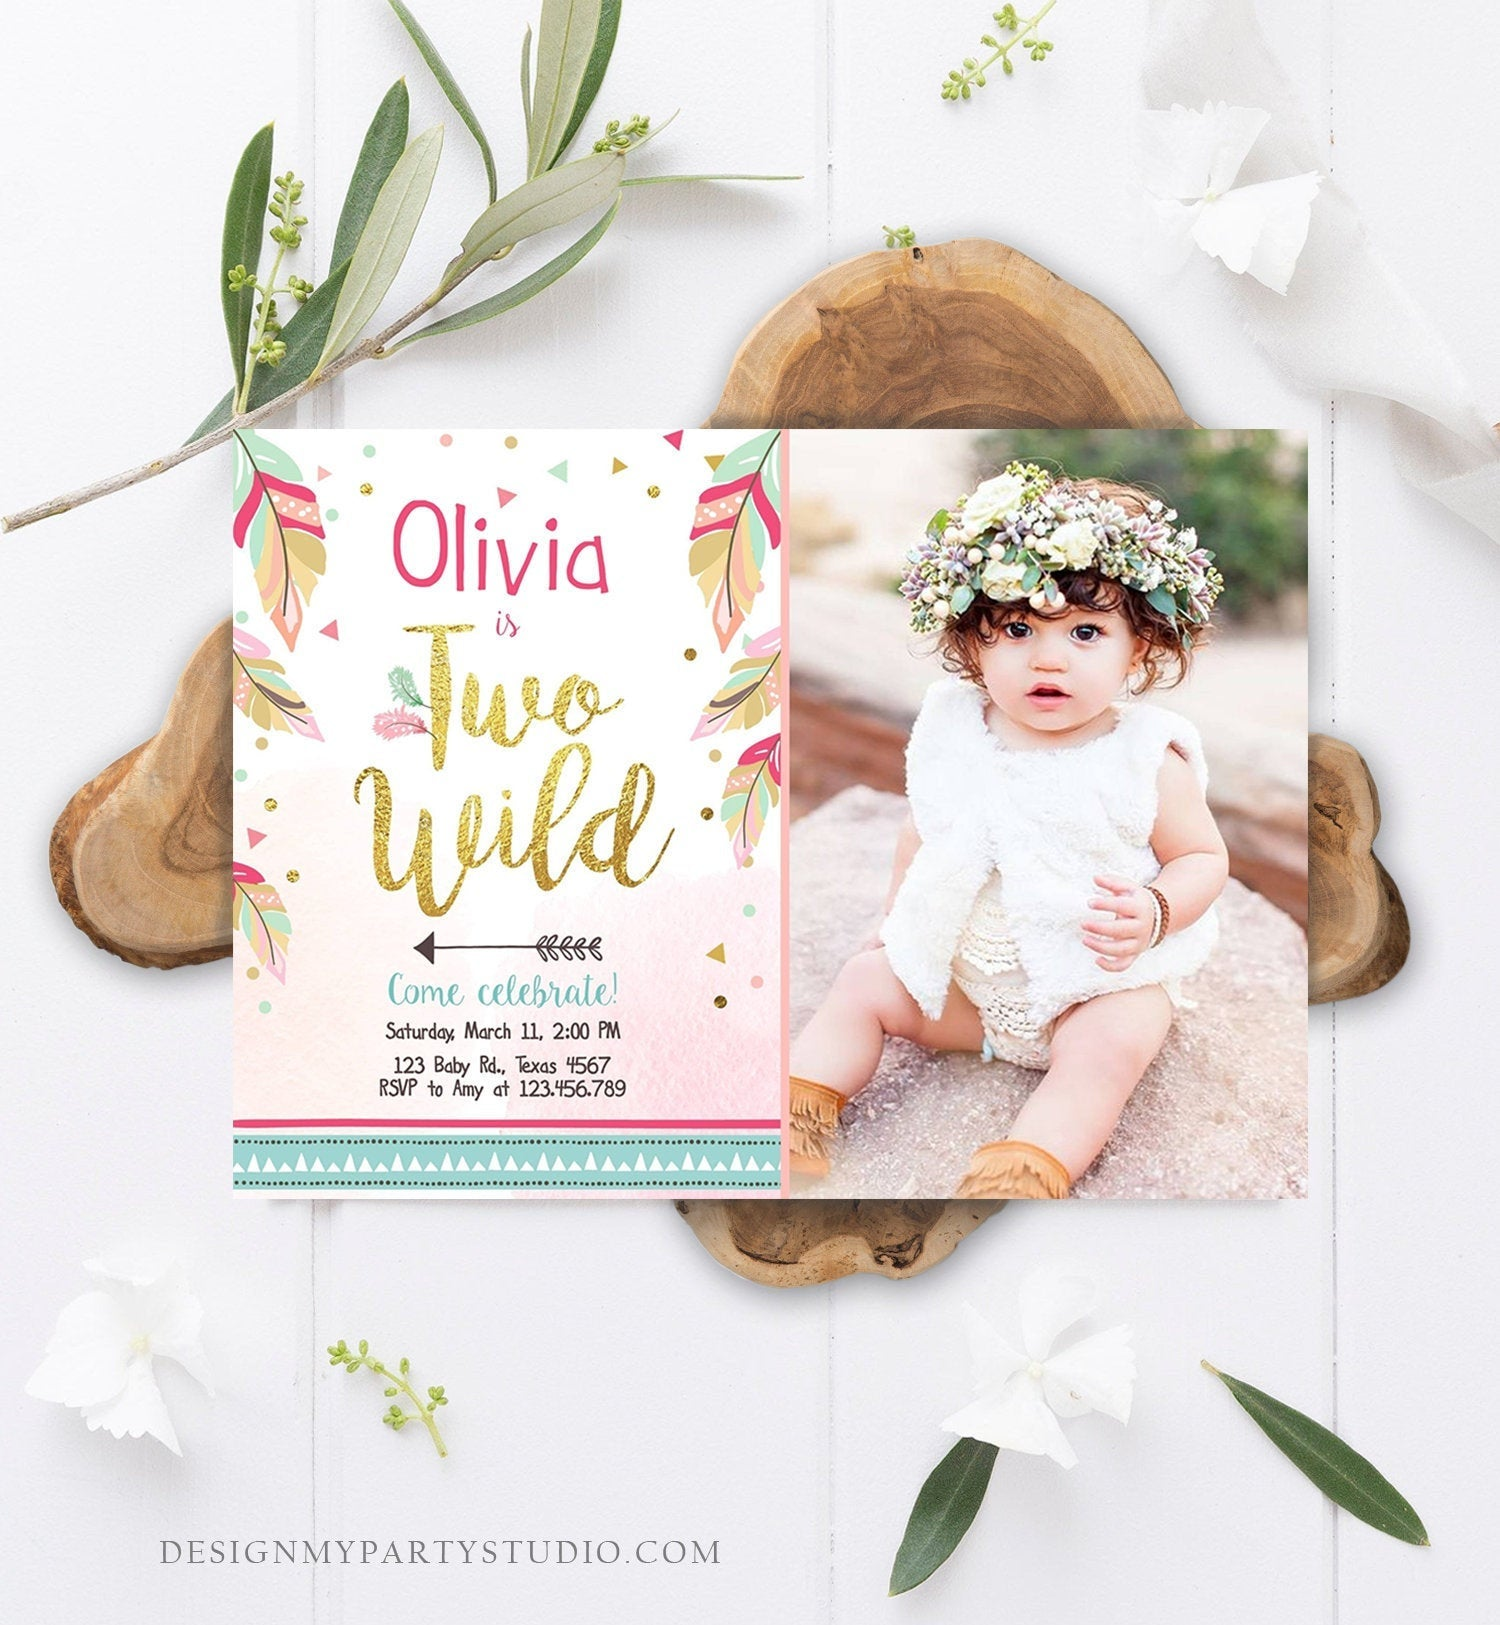 Editable Two Wild Birthday Invitation Girl 2nd Birthday Tribal Boho Feathers Pink Gold Mint Download Printable Template Digital Corjl 0038